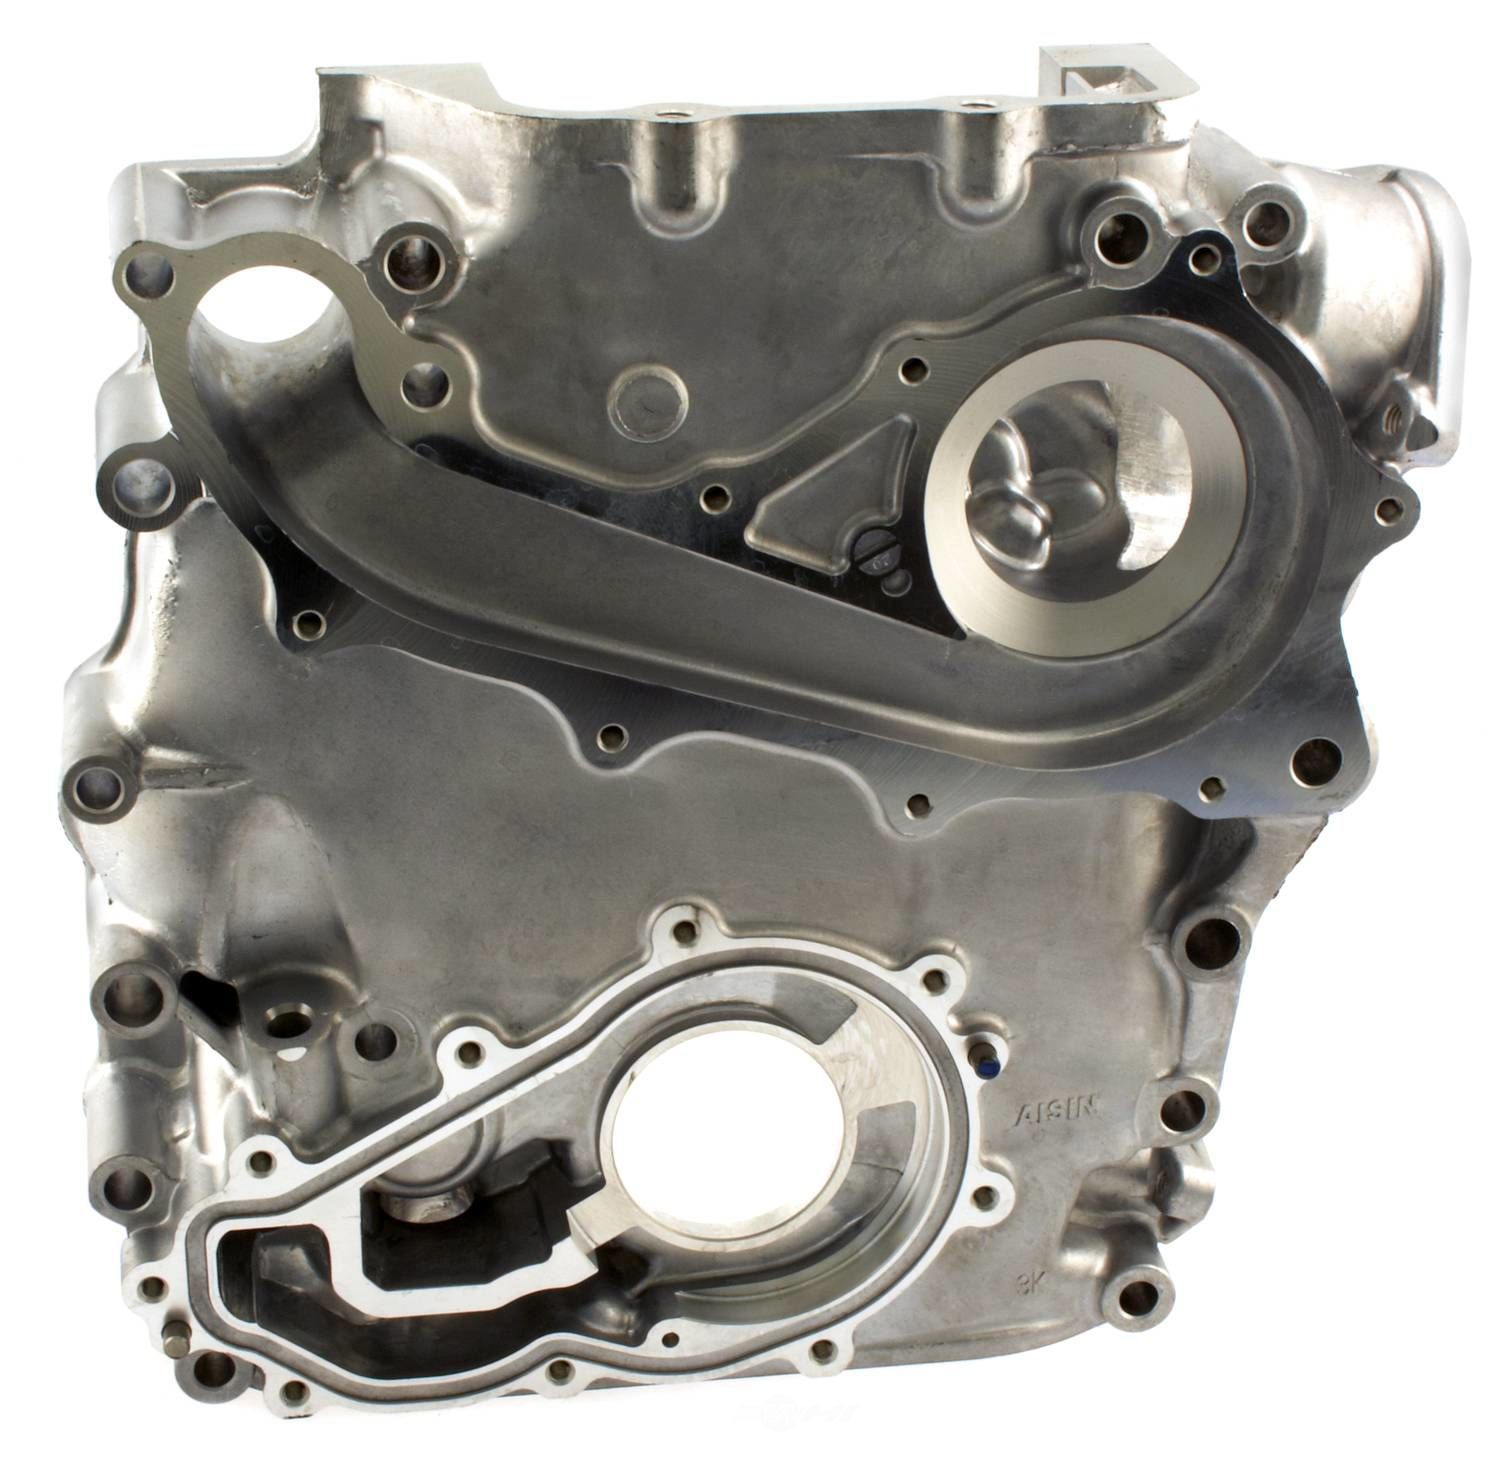 AISIN WORLD CORP. OF AMERICA - Engine Timing Cover - AIS TCT-069